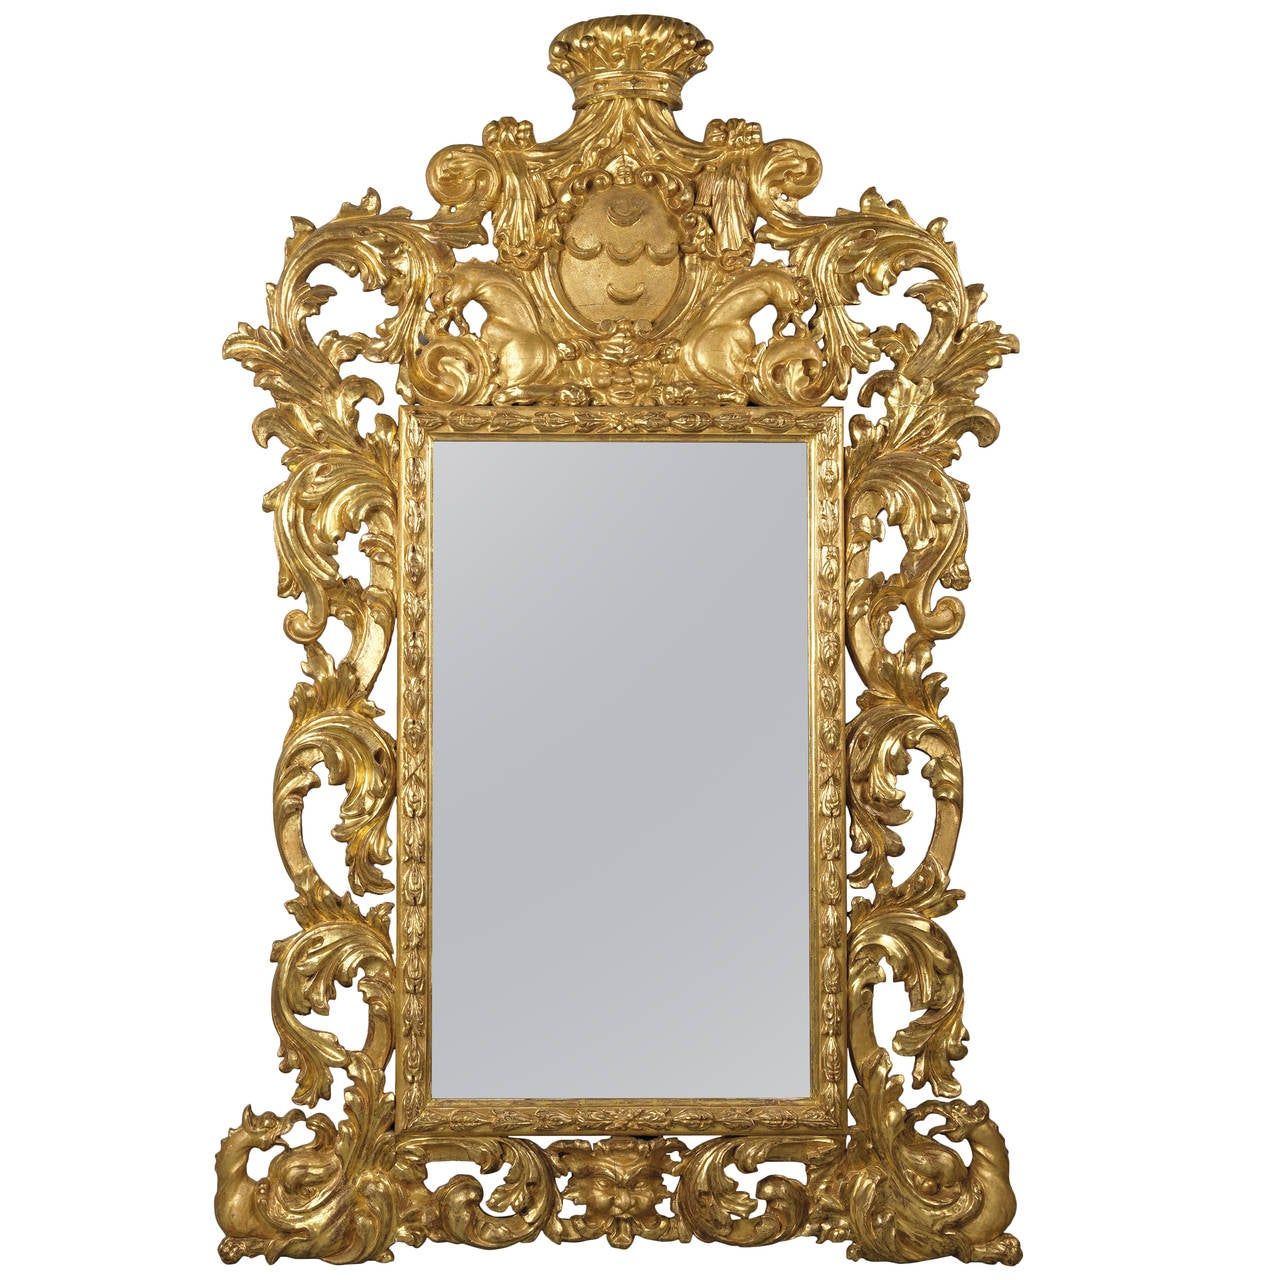 Large baroque style carved giltwood mirror at 1stdibs for Baroque style wall mirror